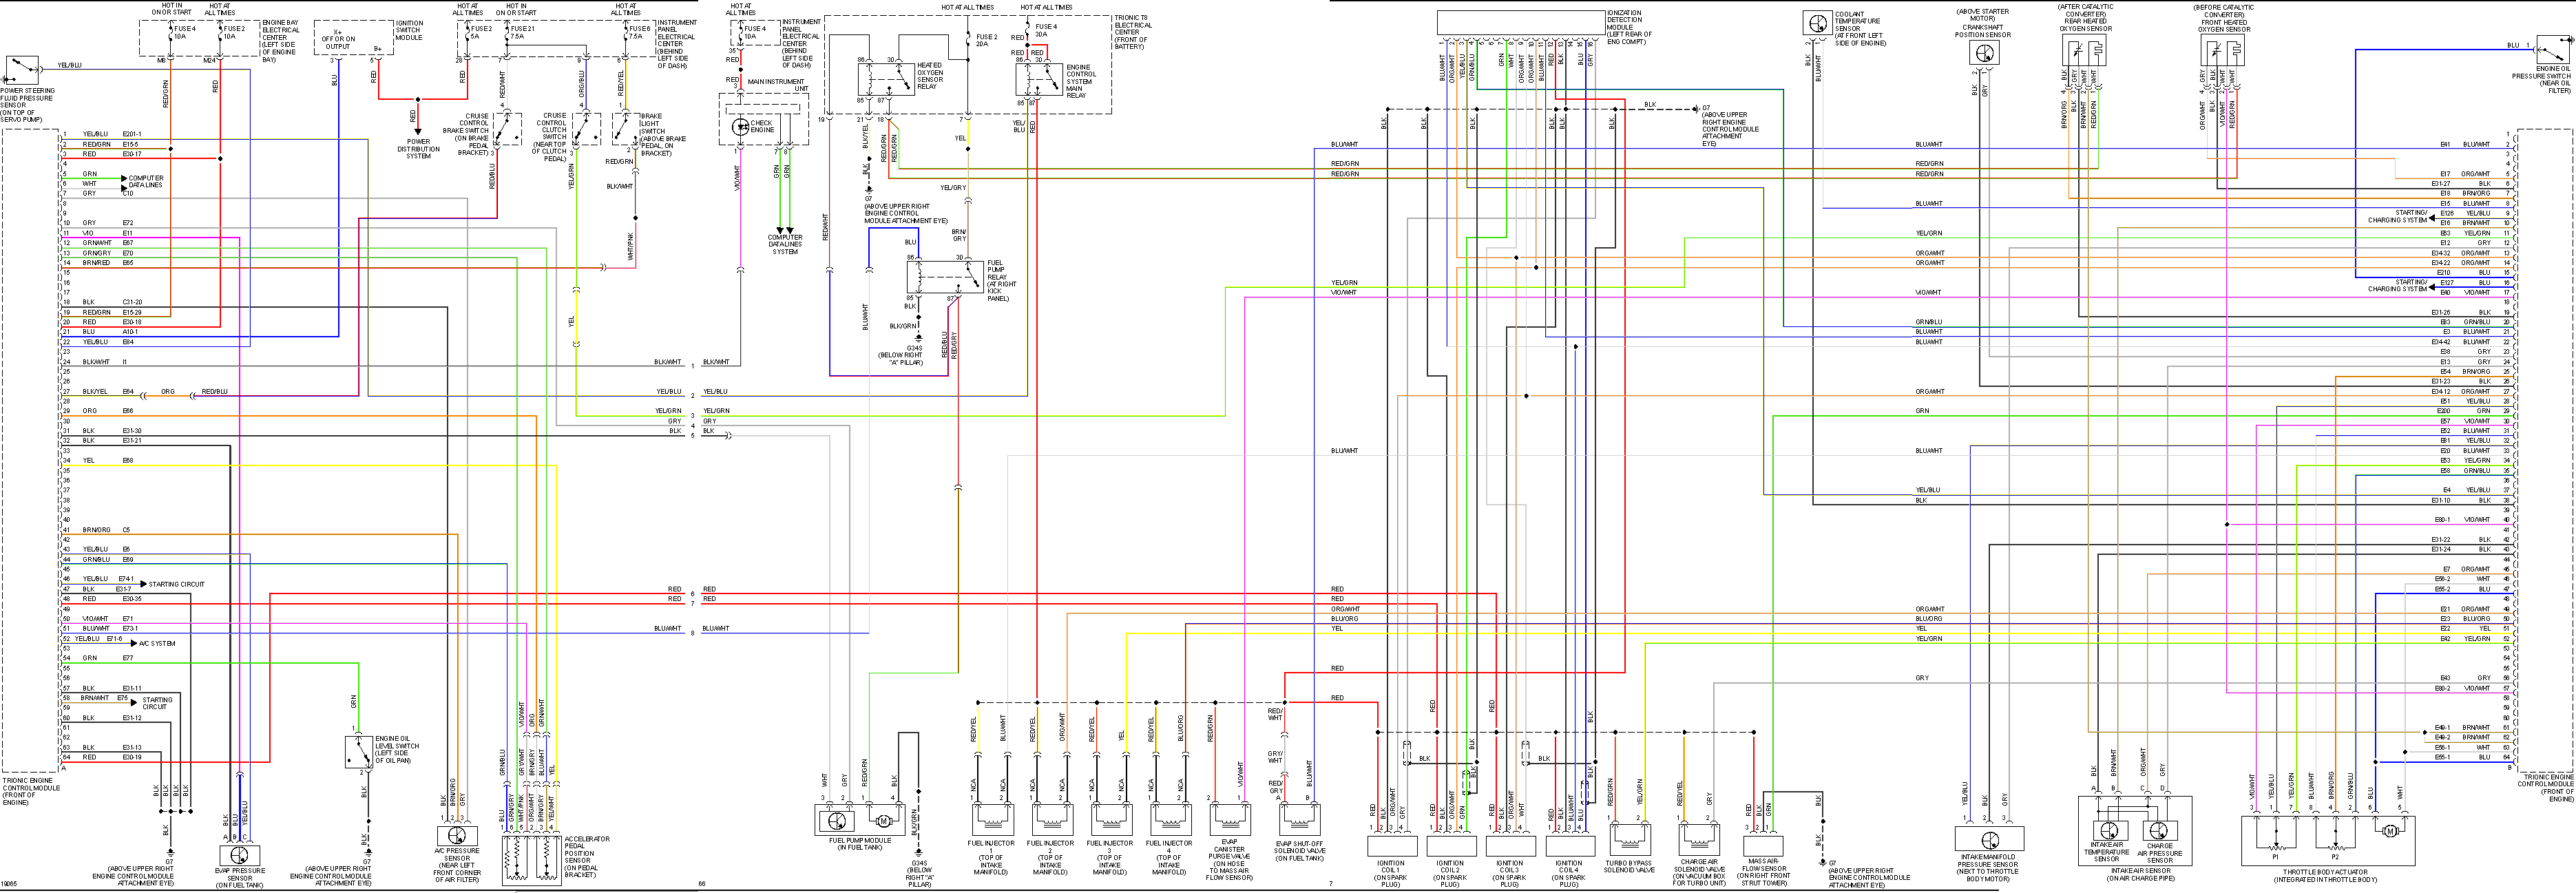 File:Saab 2005 9-3 2.0T engine wiring diagram.png - rusEfirusEFI